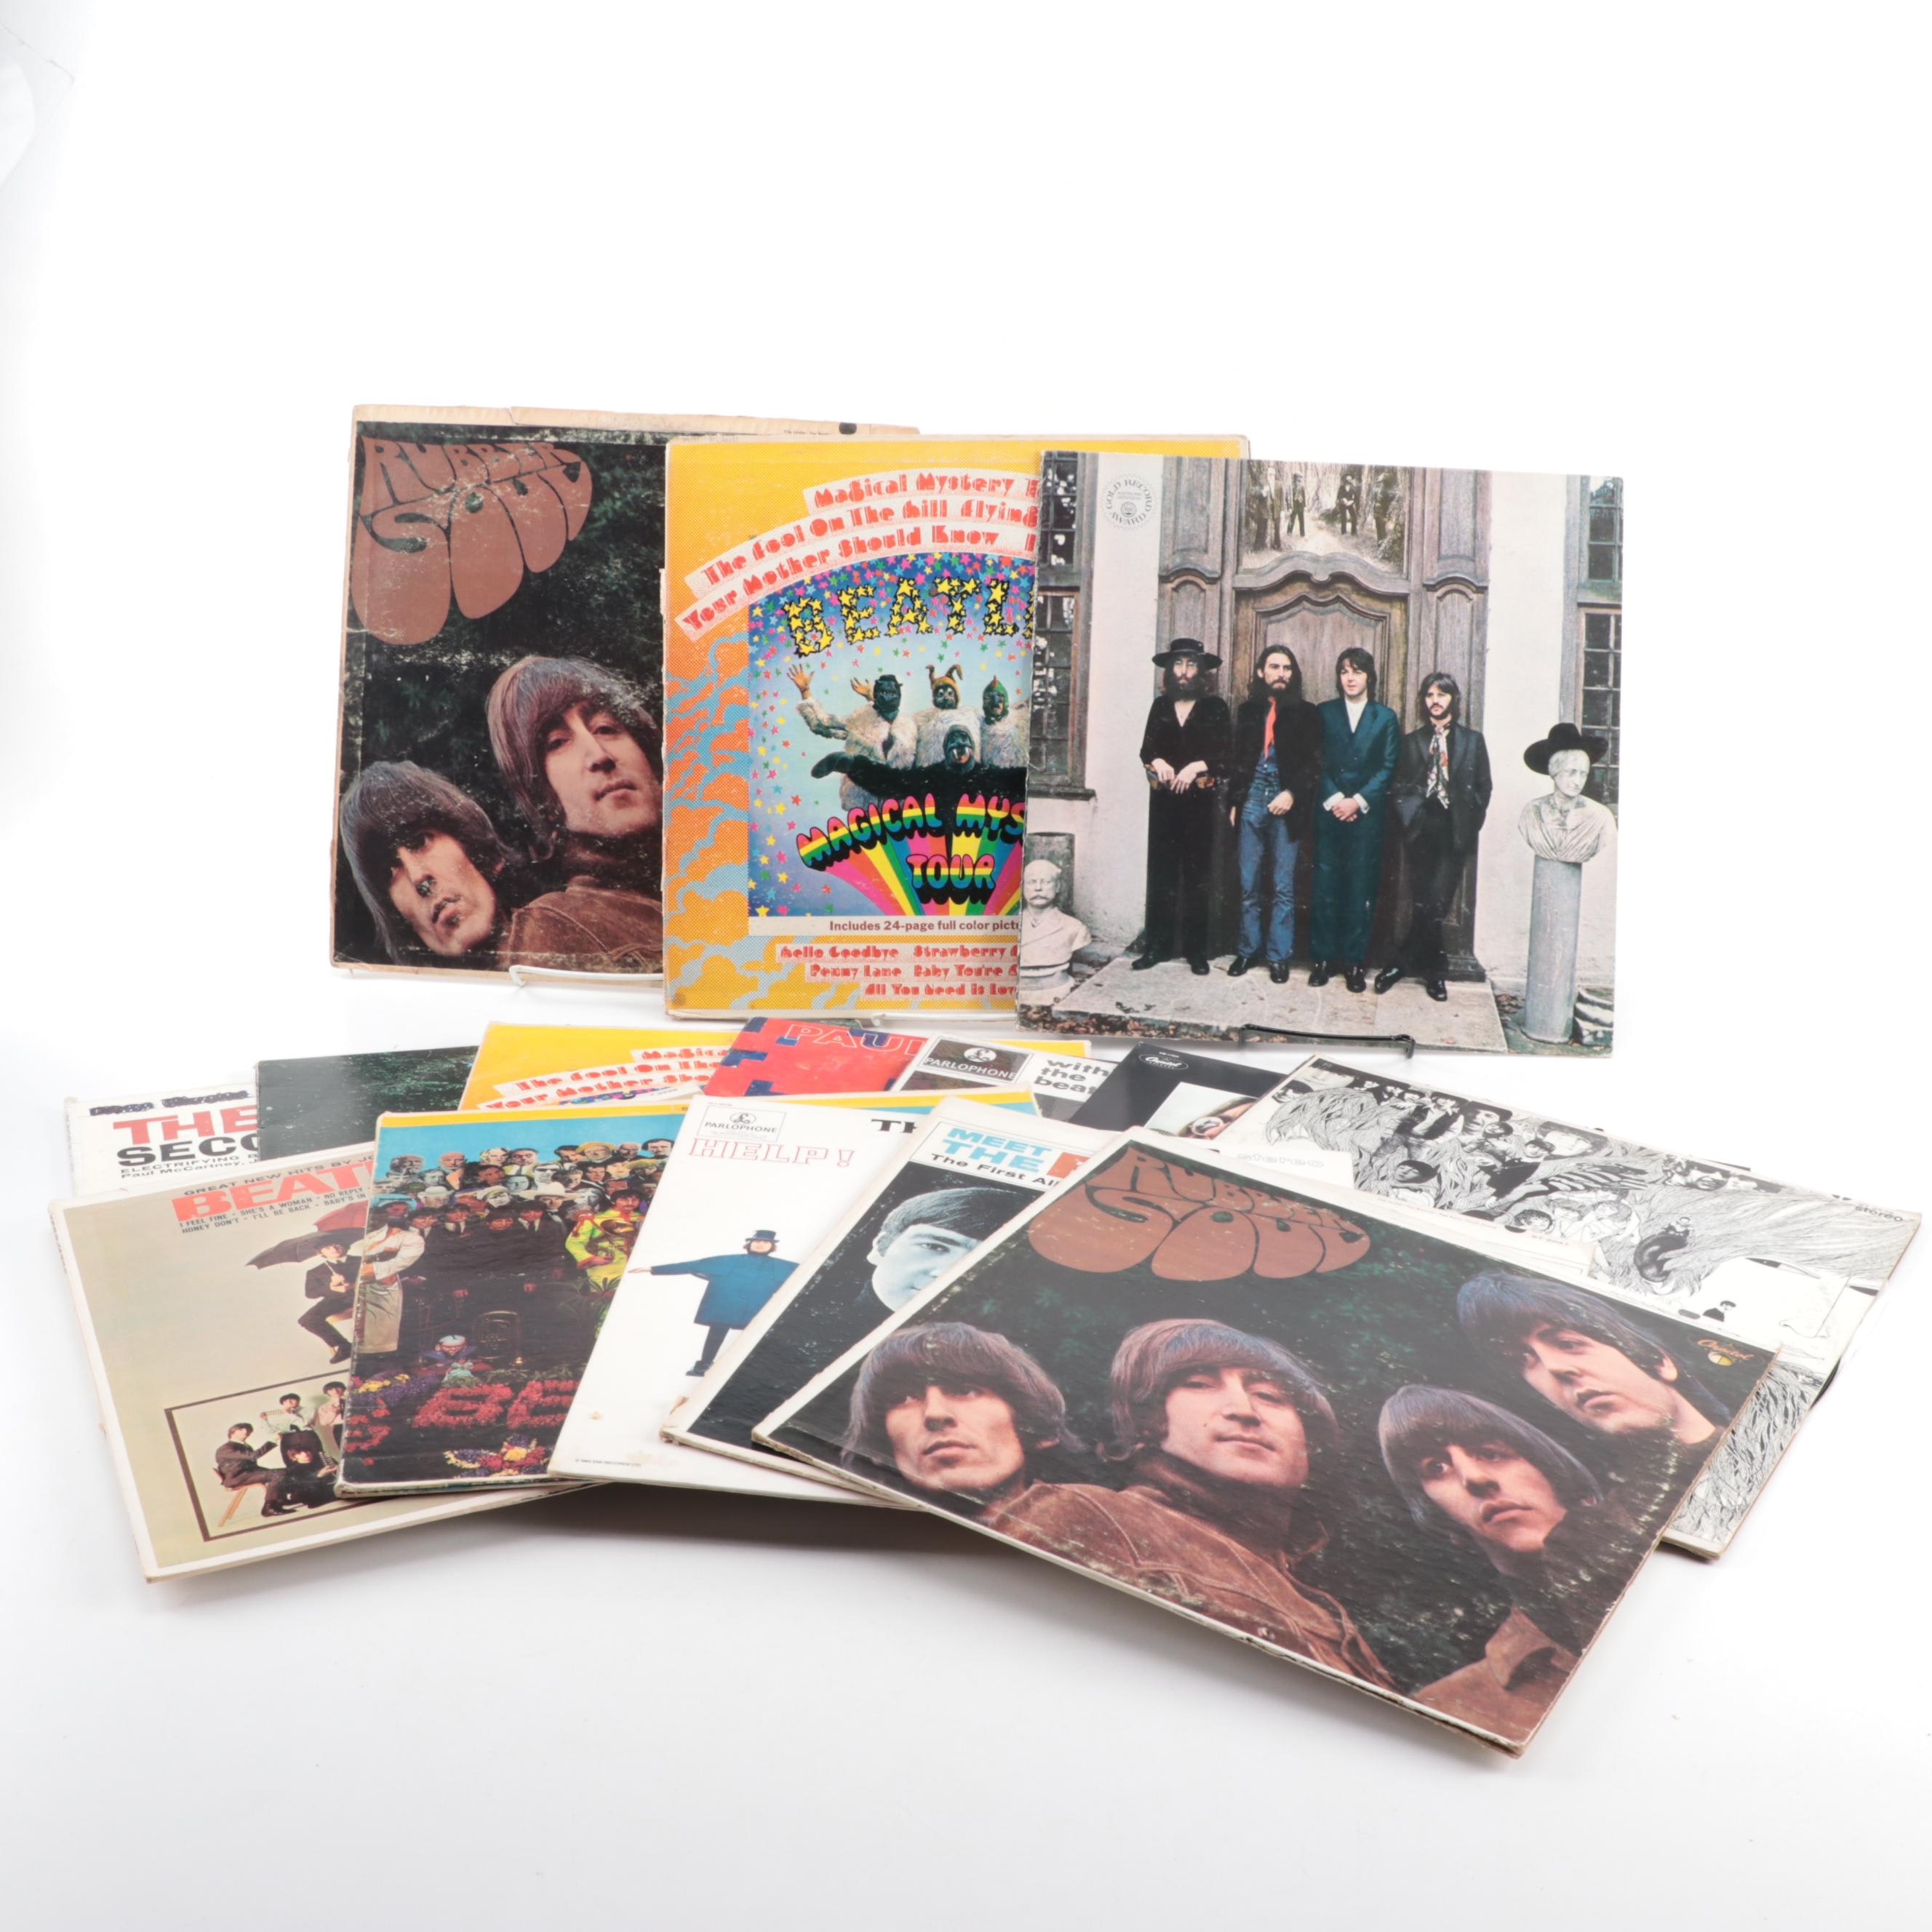 """""""Rubber Soul"""", """"Revolver"""", """"Magical Mystery Tour"""" and Other Beatles Records"""